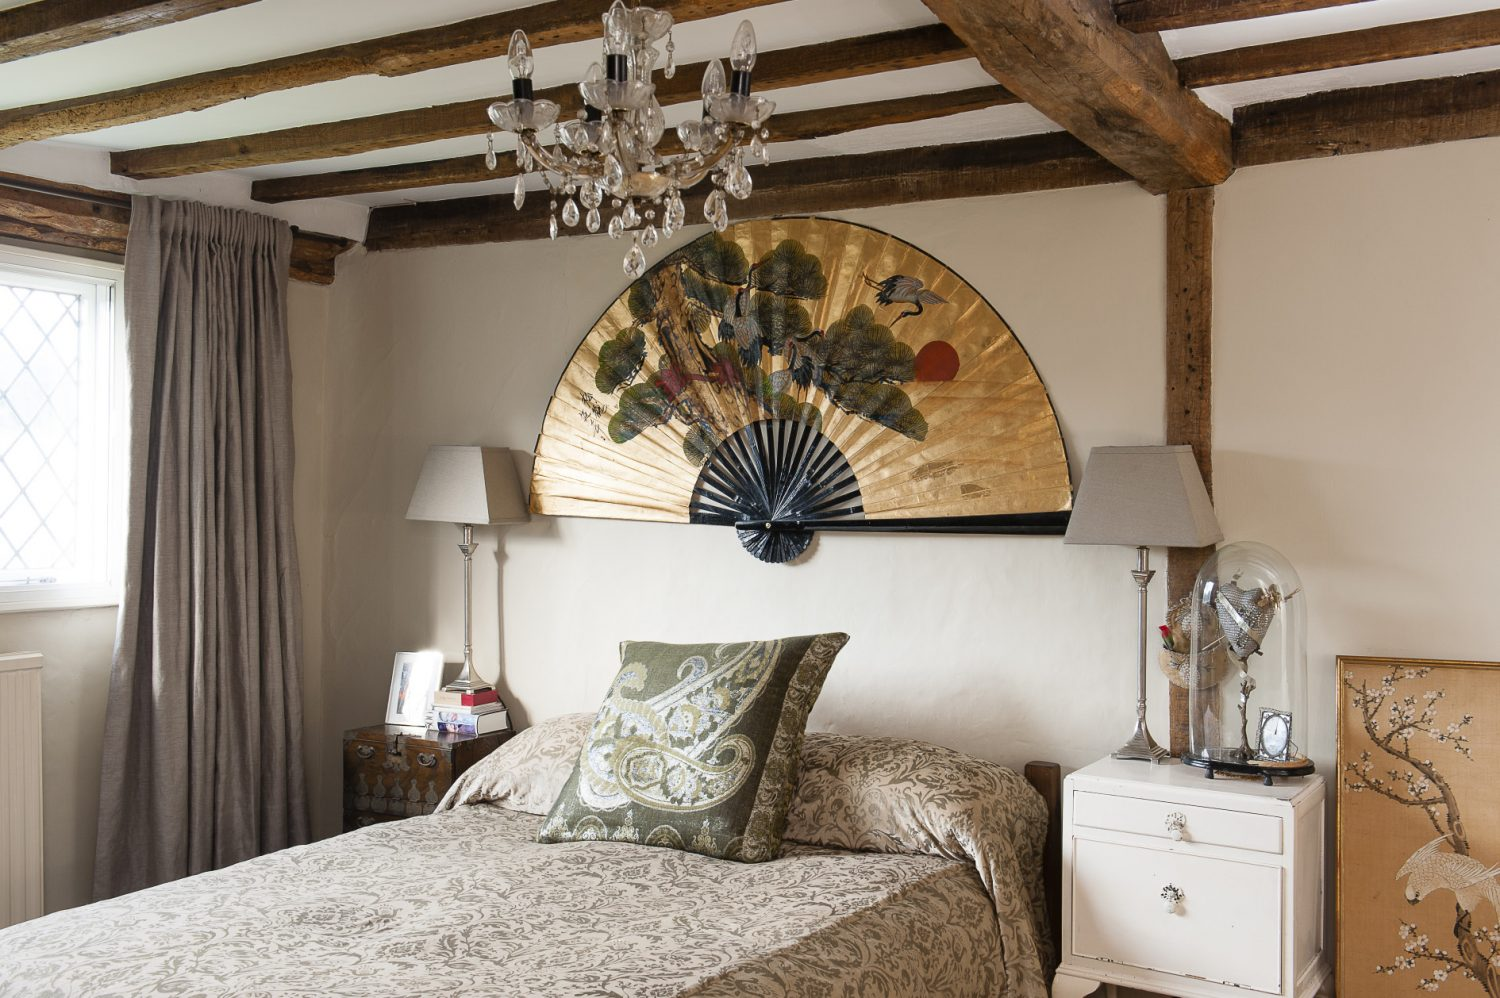 A glowing gold oriental fan takes centrestage in the master bedroom. Beside the bed is Roni and John's own wedding dome.